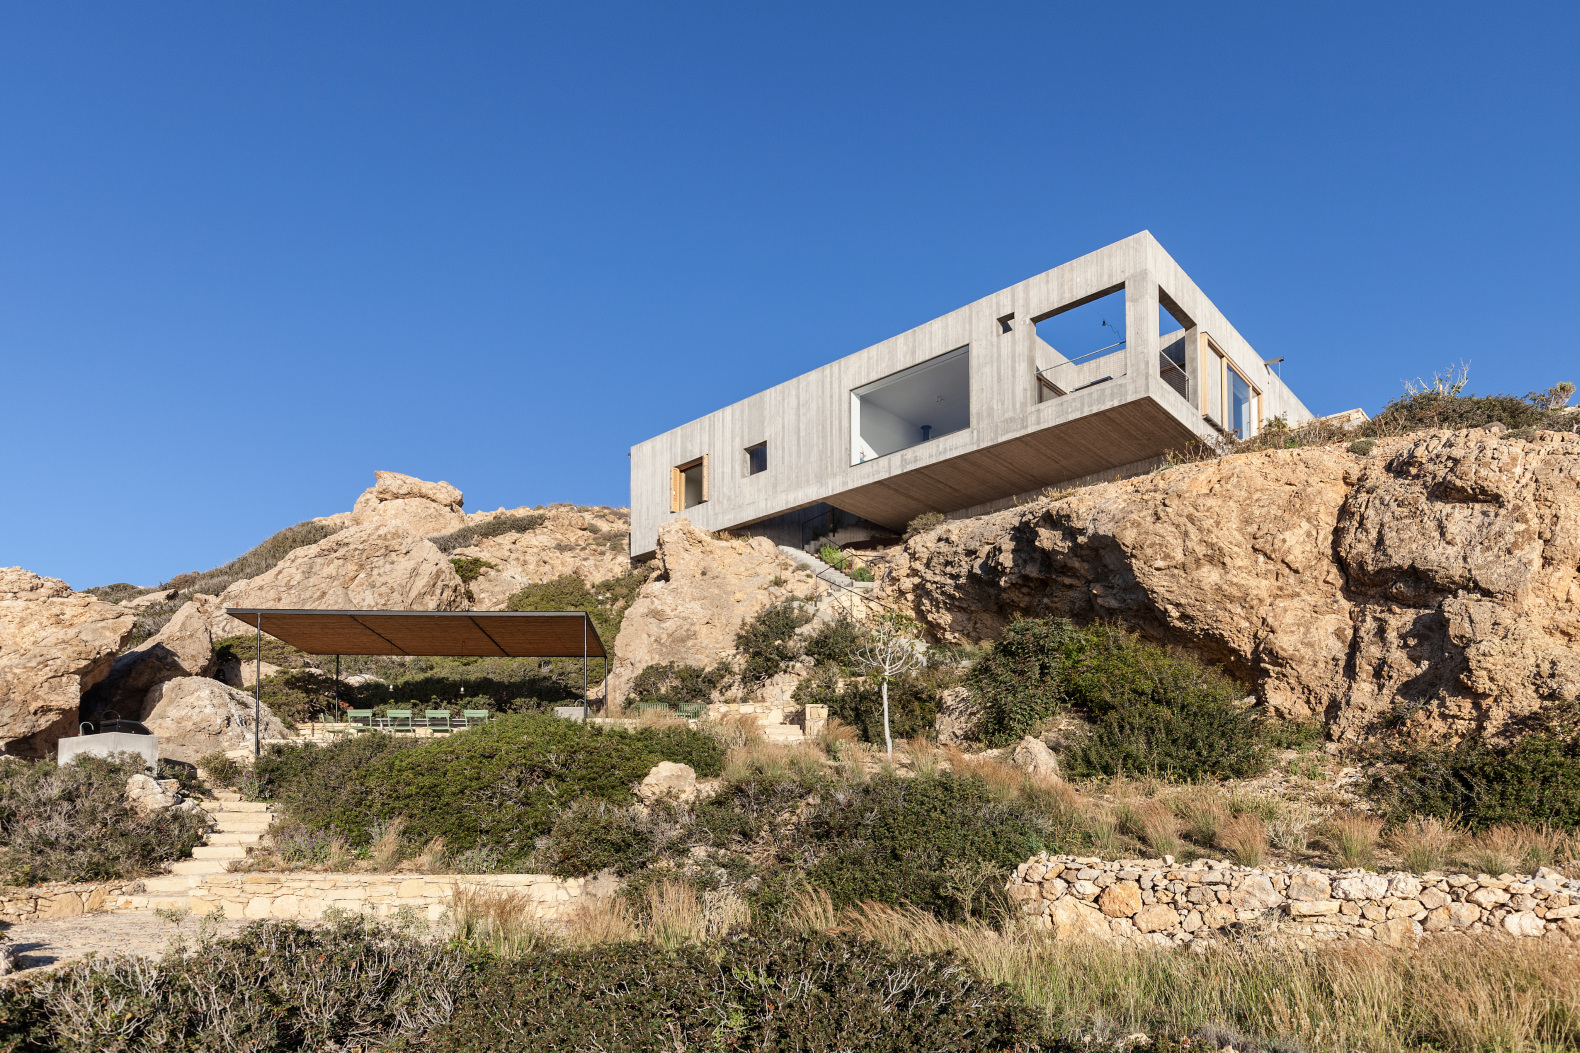 Concrete home perched on Greek island cliffside designed with large cut outs to frame the amazing sea views